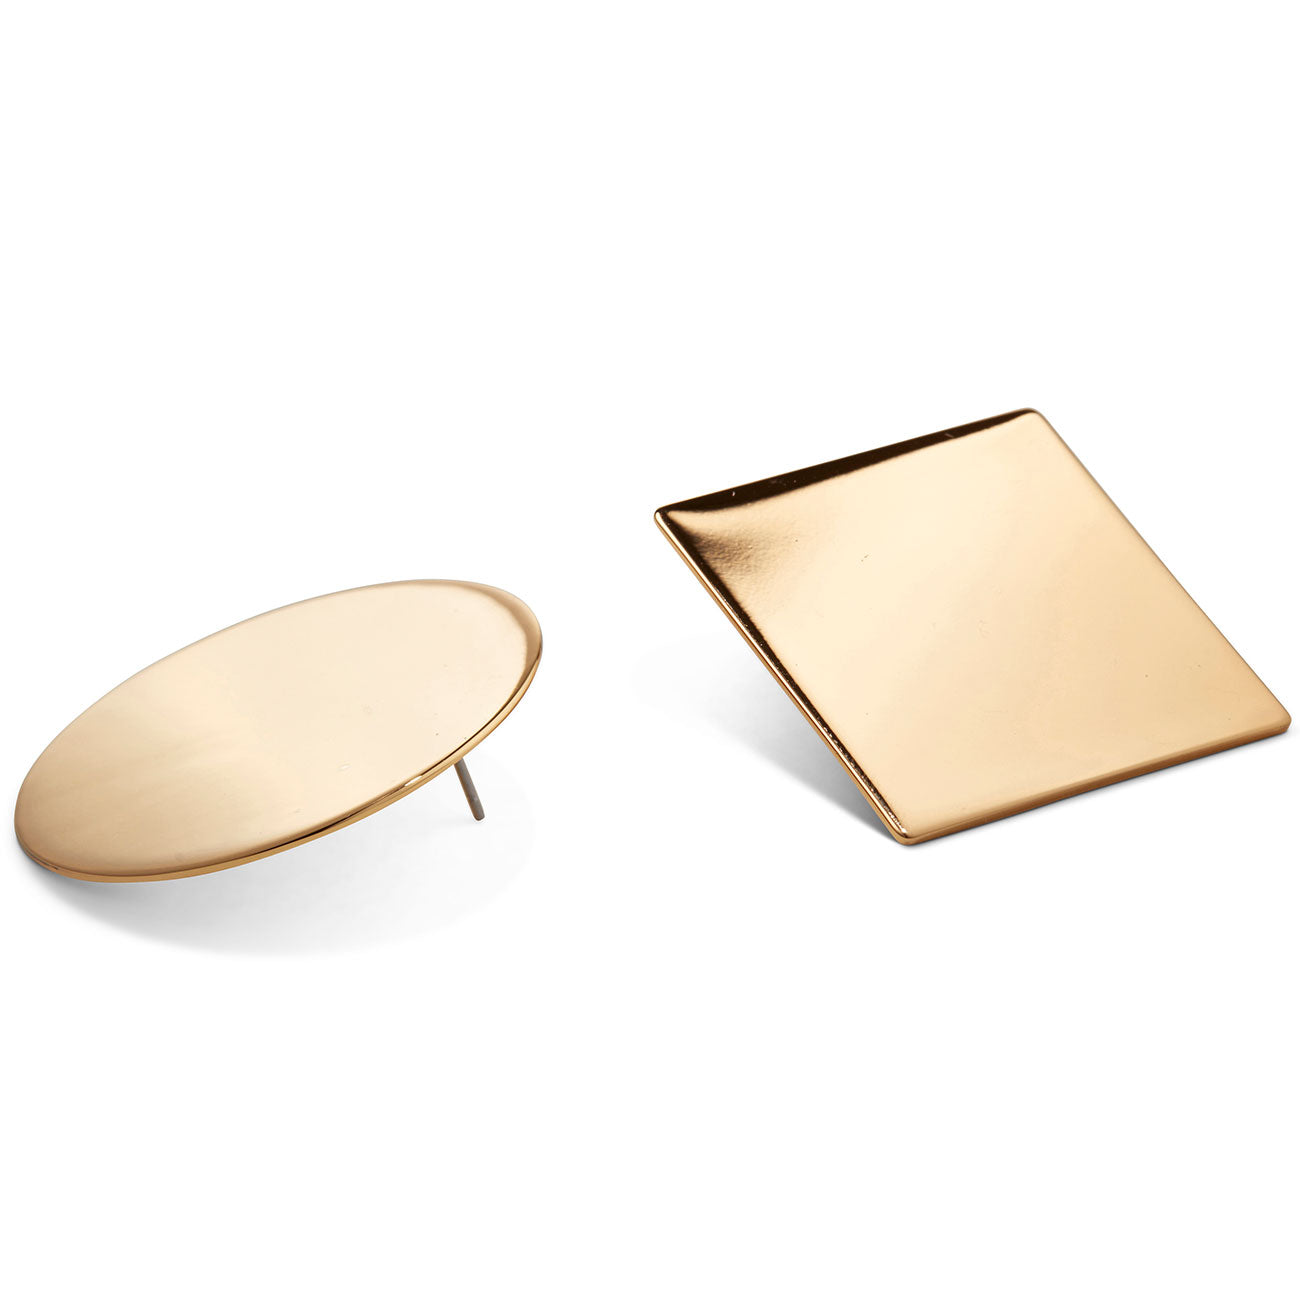 The Baysides Earrings by Jenny Bird in Gold